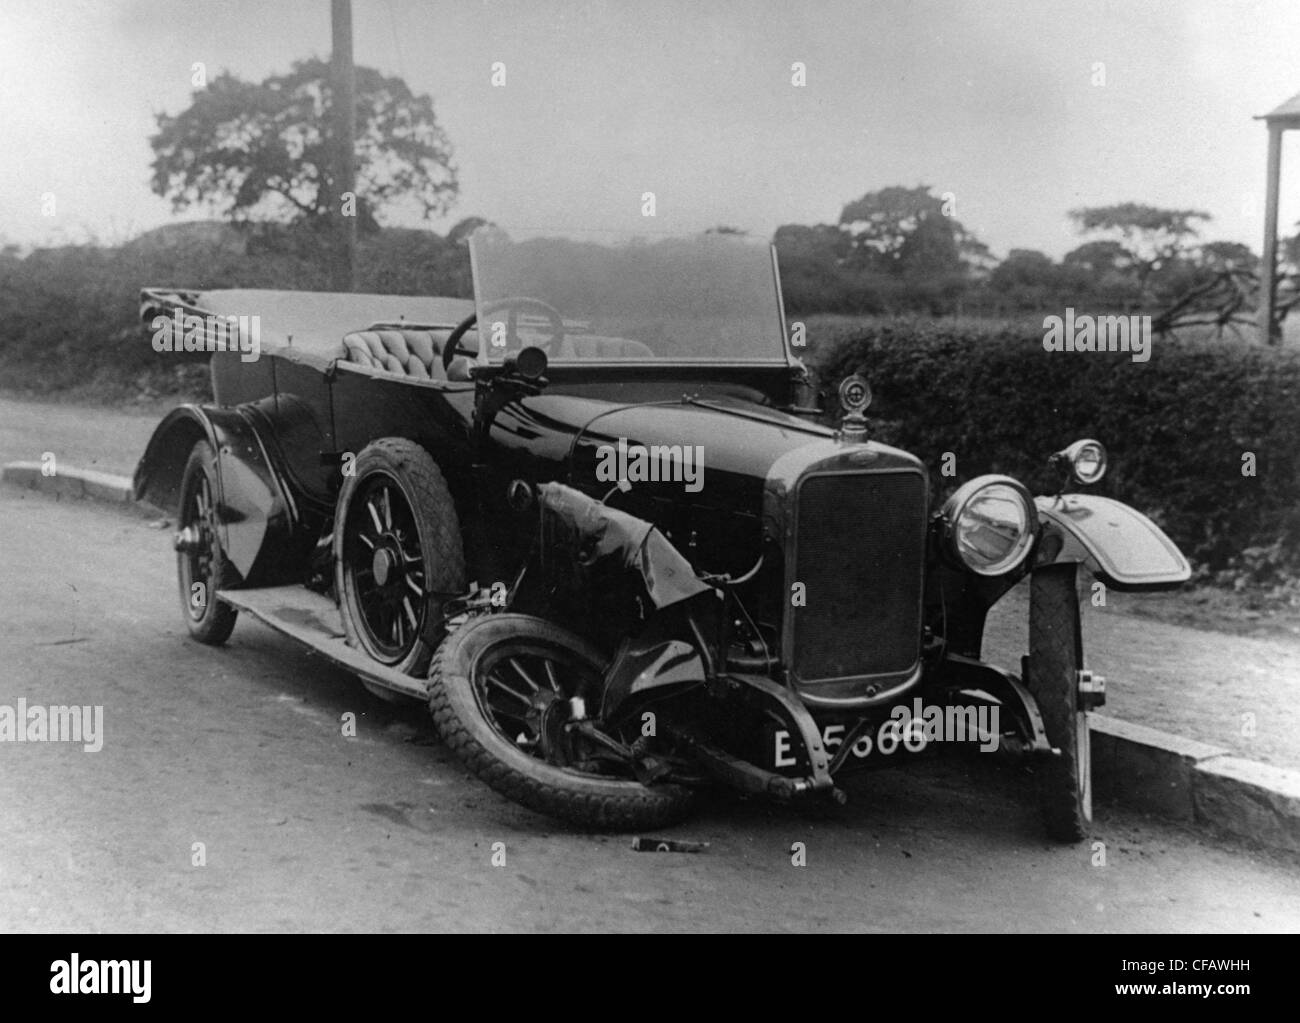 1920s Car Accident Stock Photos & 1920s Car Accident Stock Images ...